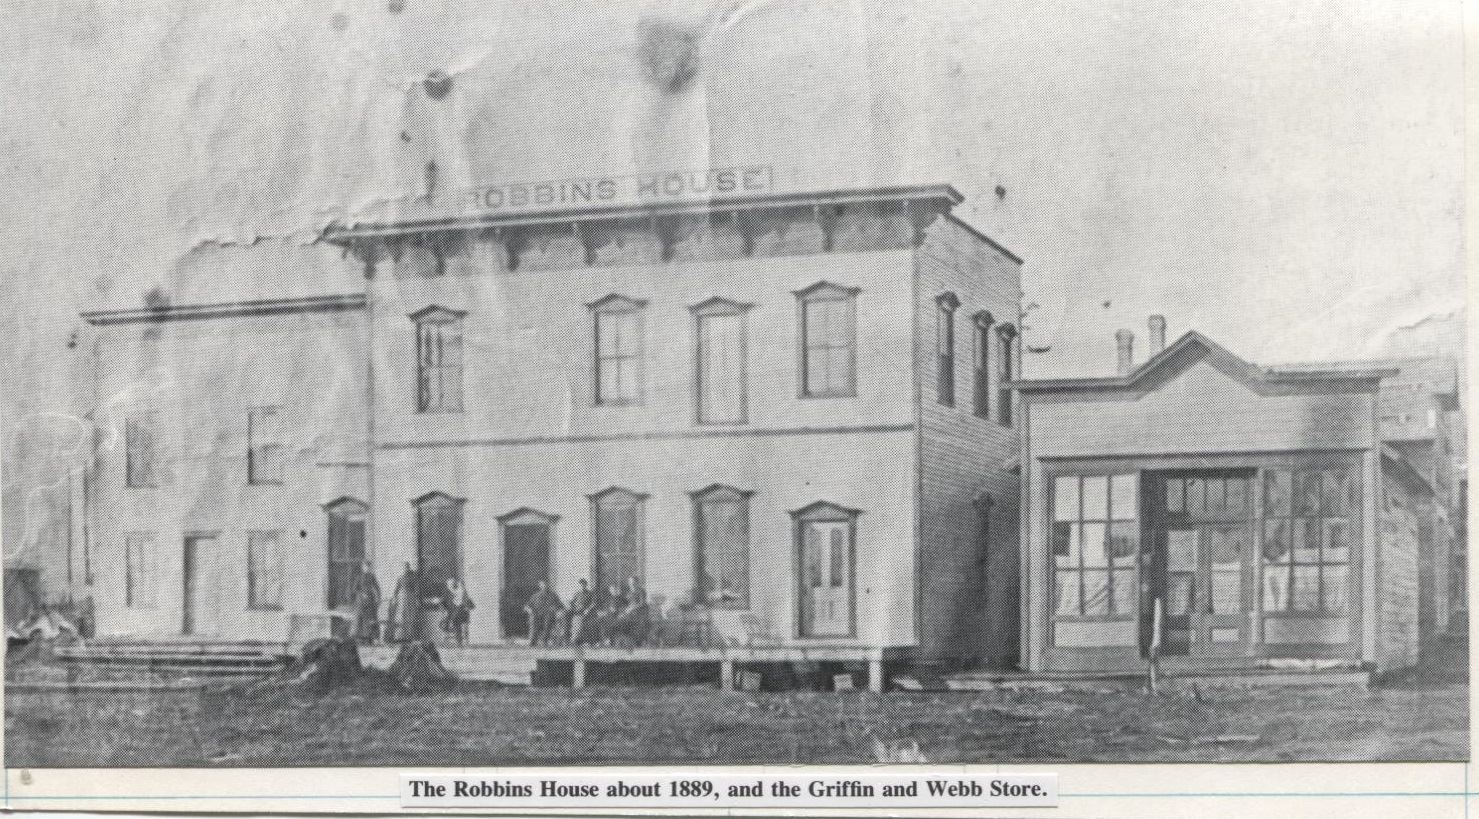 Business - Hotel Robbins House 1889